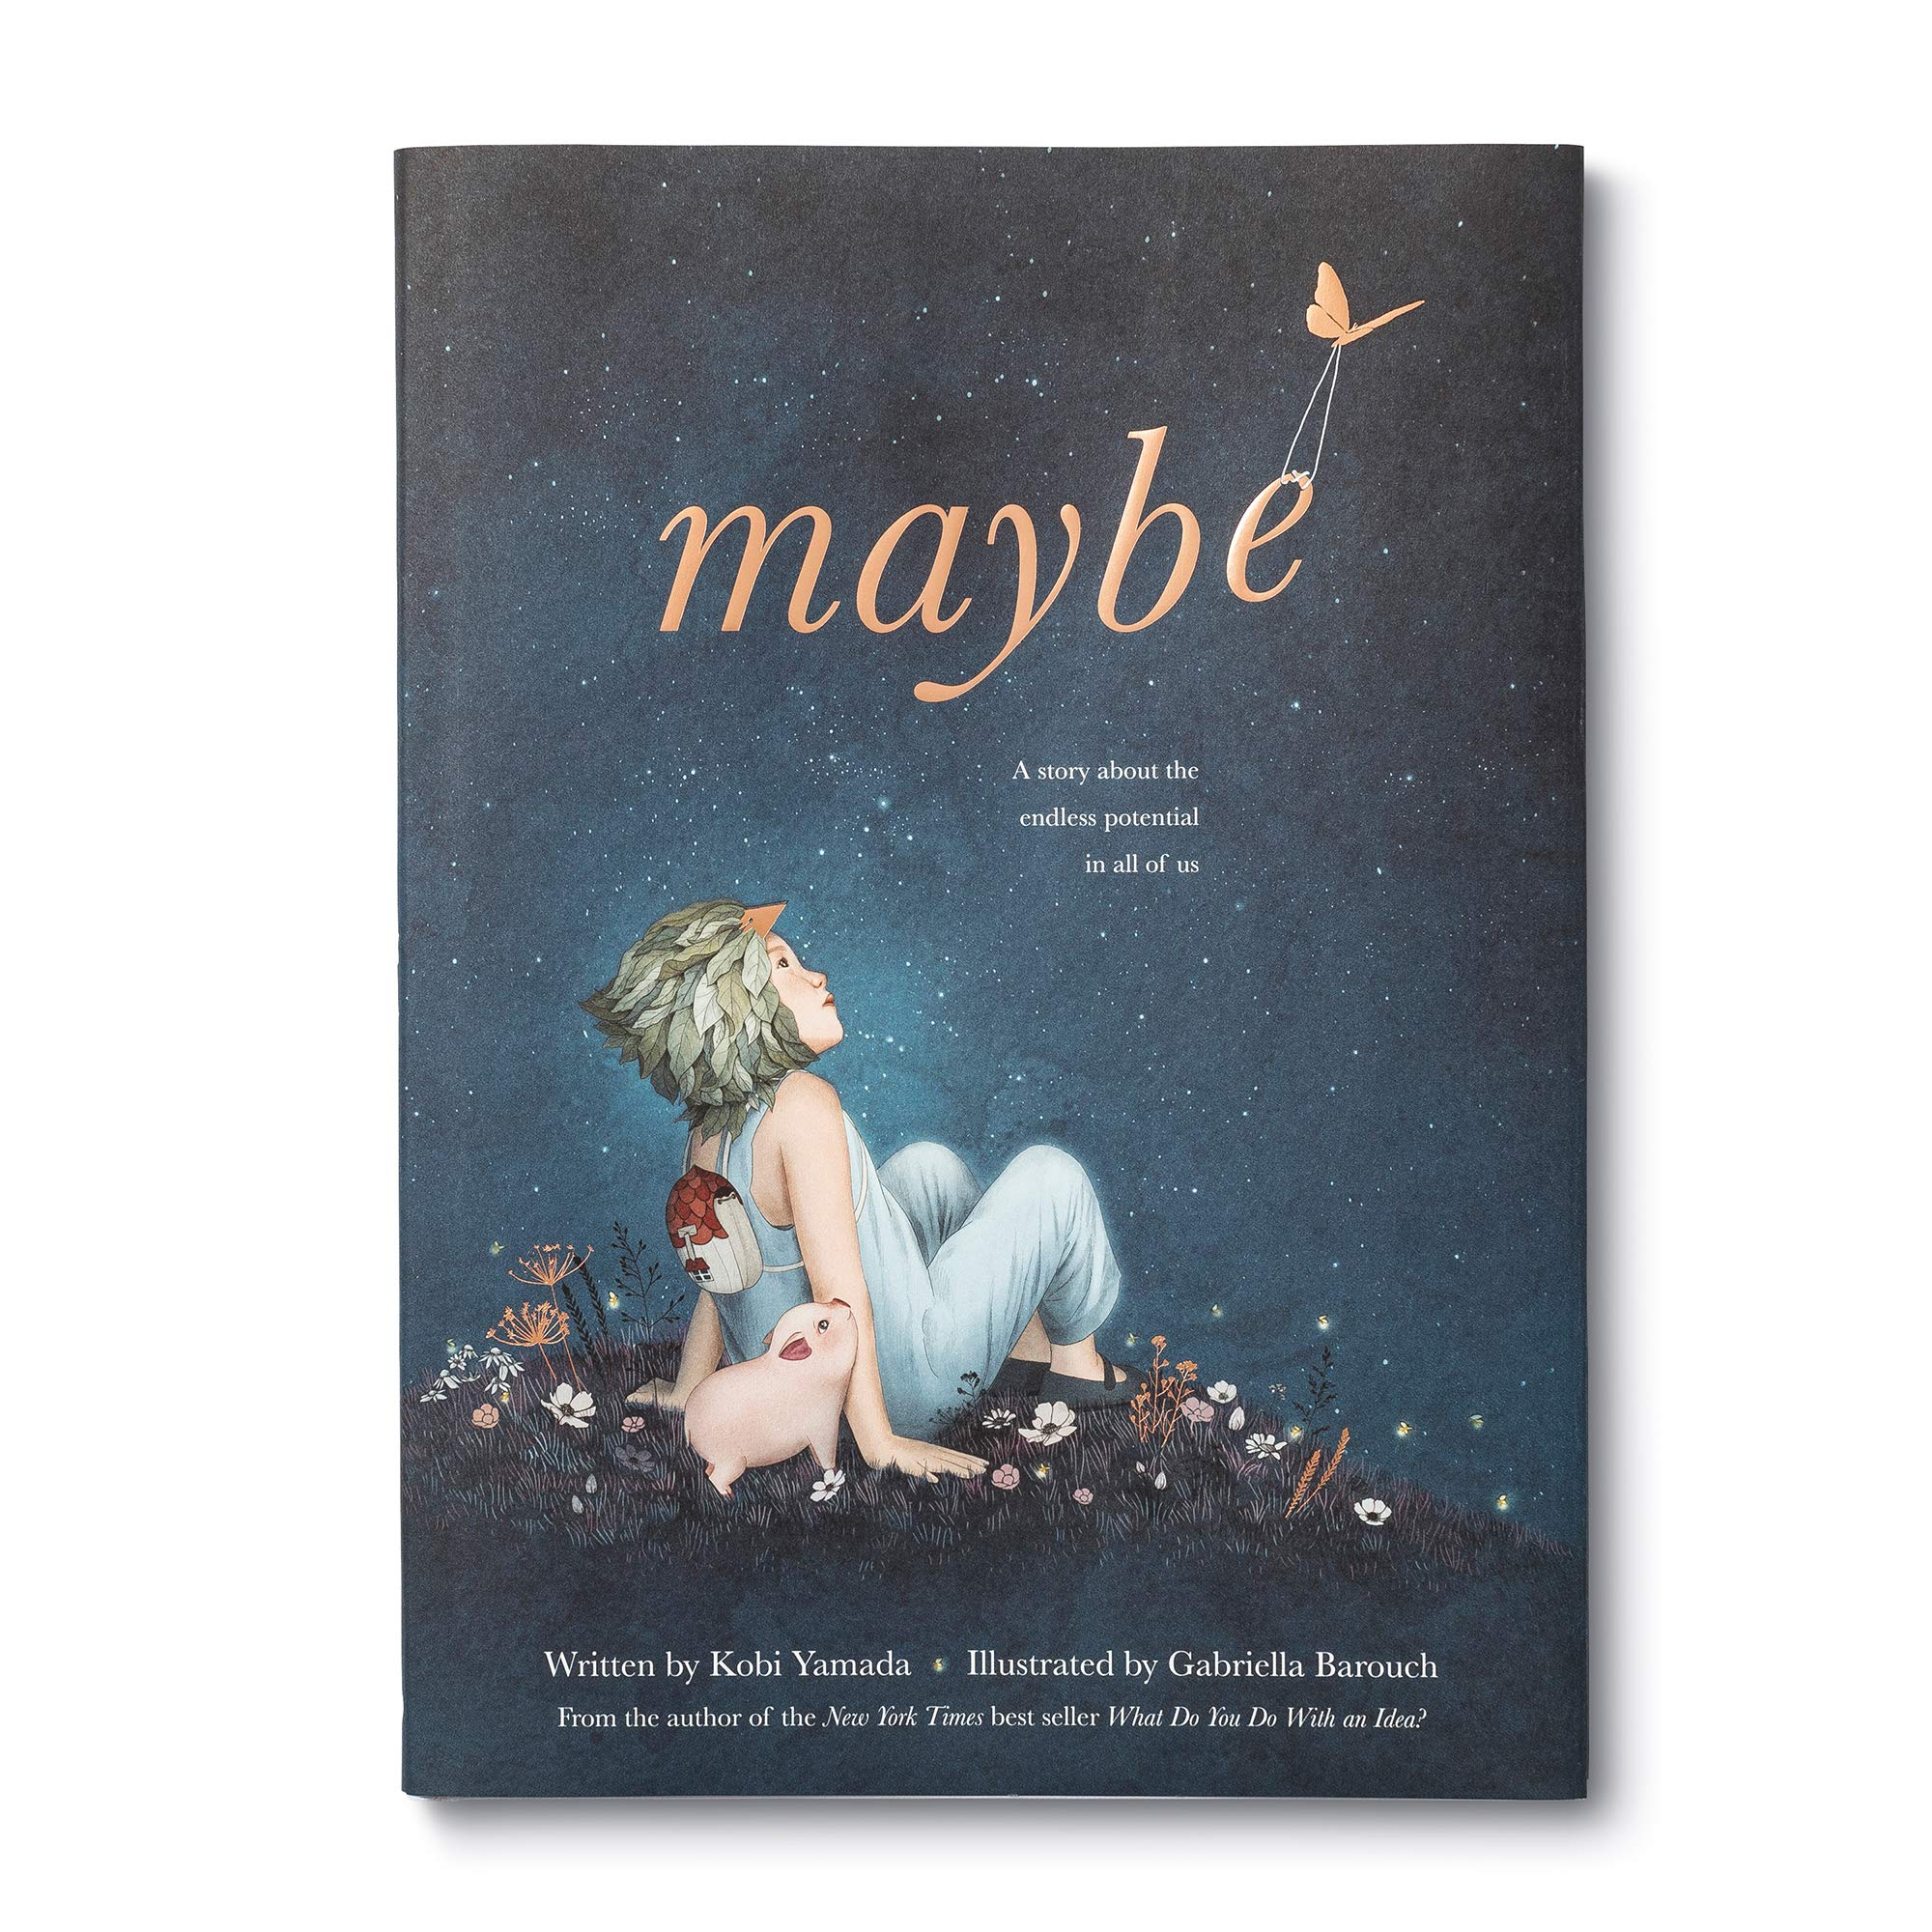 Maybe: A Story About the Endless Potential in All of Us: Yamada, Kobi,  Barouch, Gabriella: 9781946873750: Amazon.com: Books